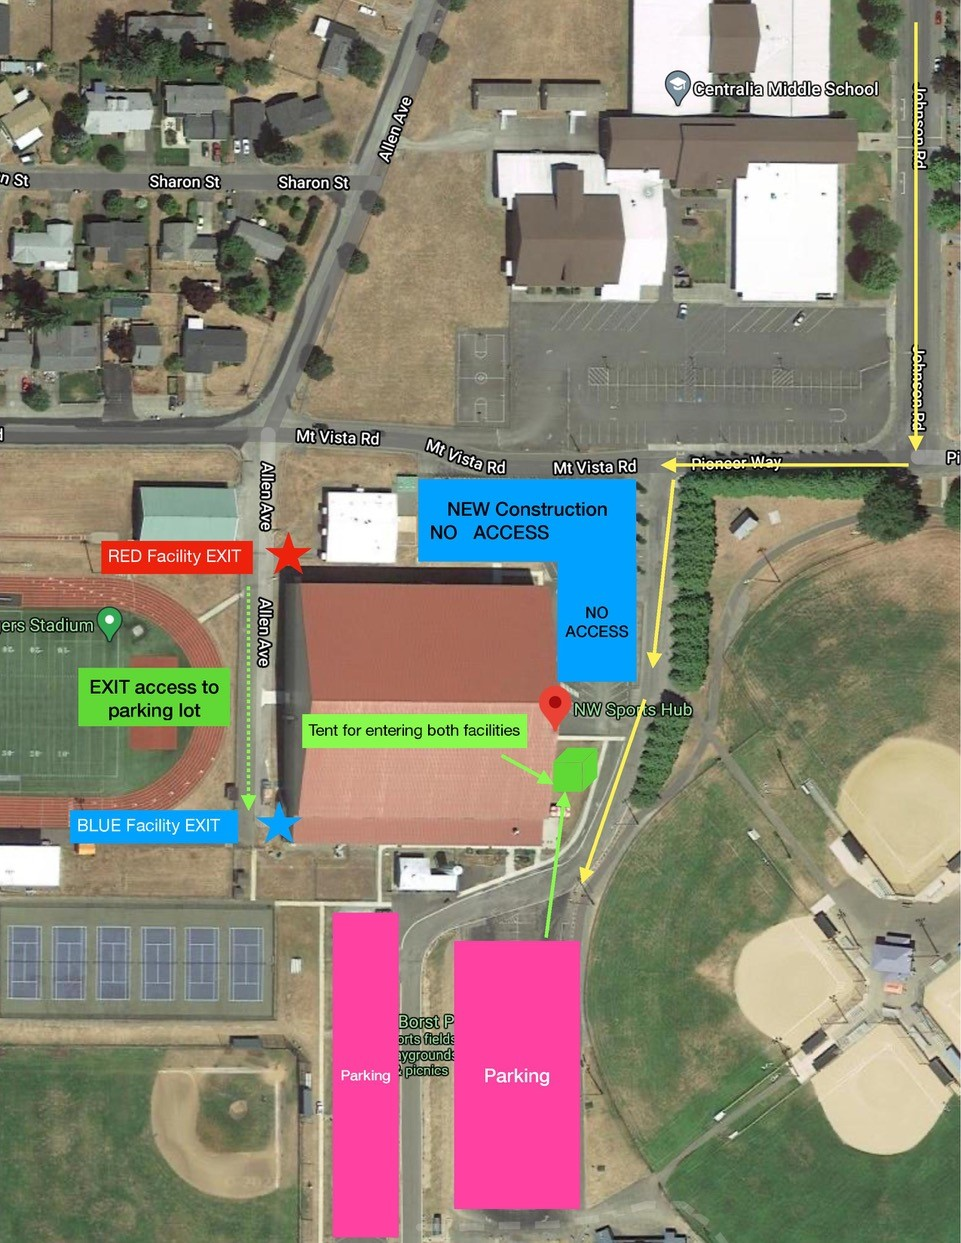 Map of area surrounding HUB with parking and entrance instructions